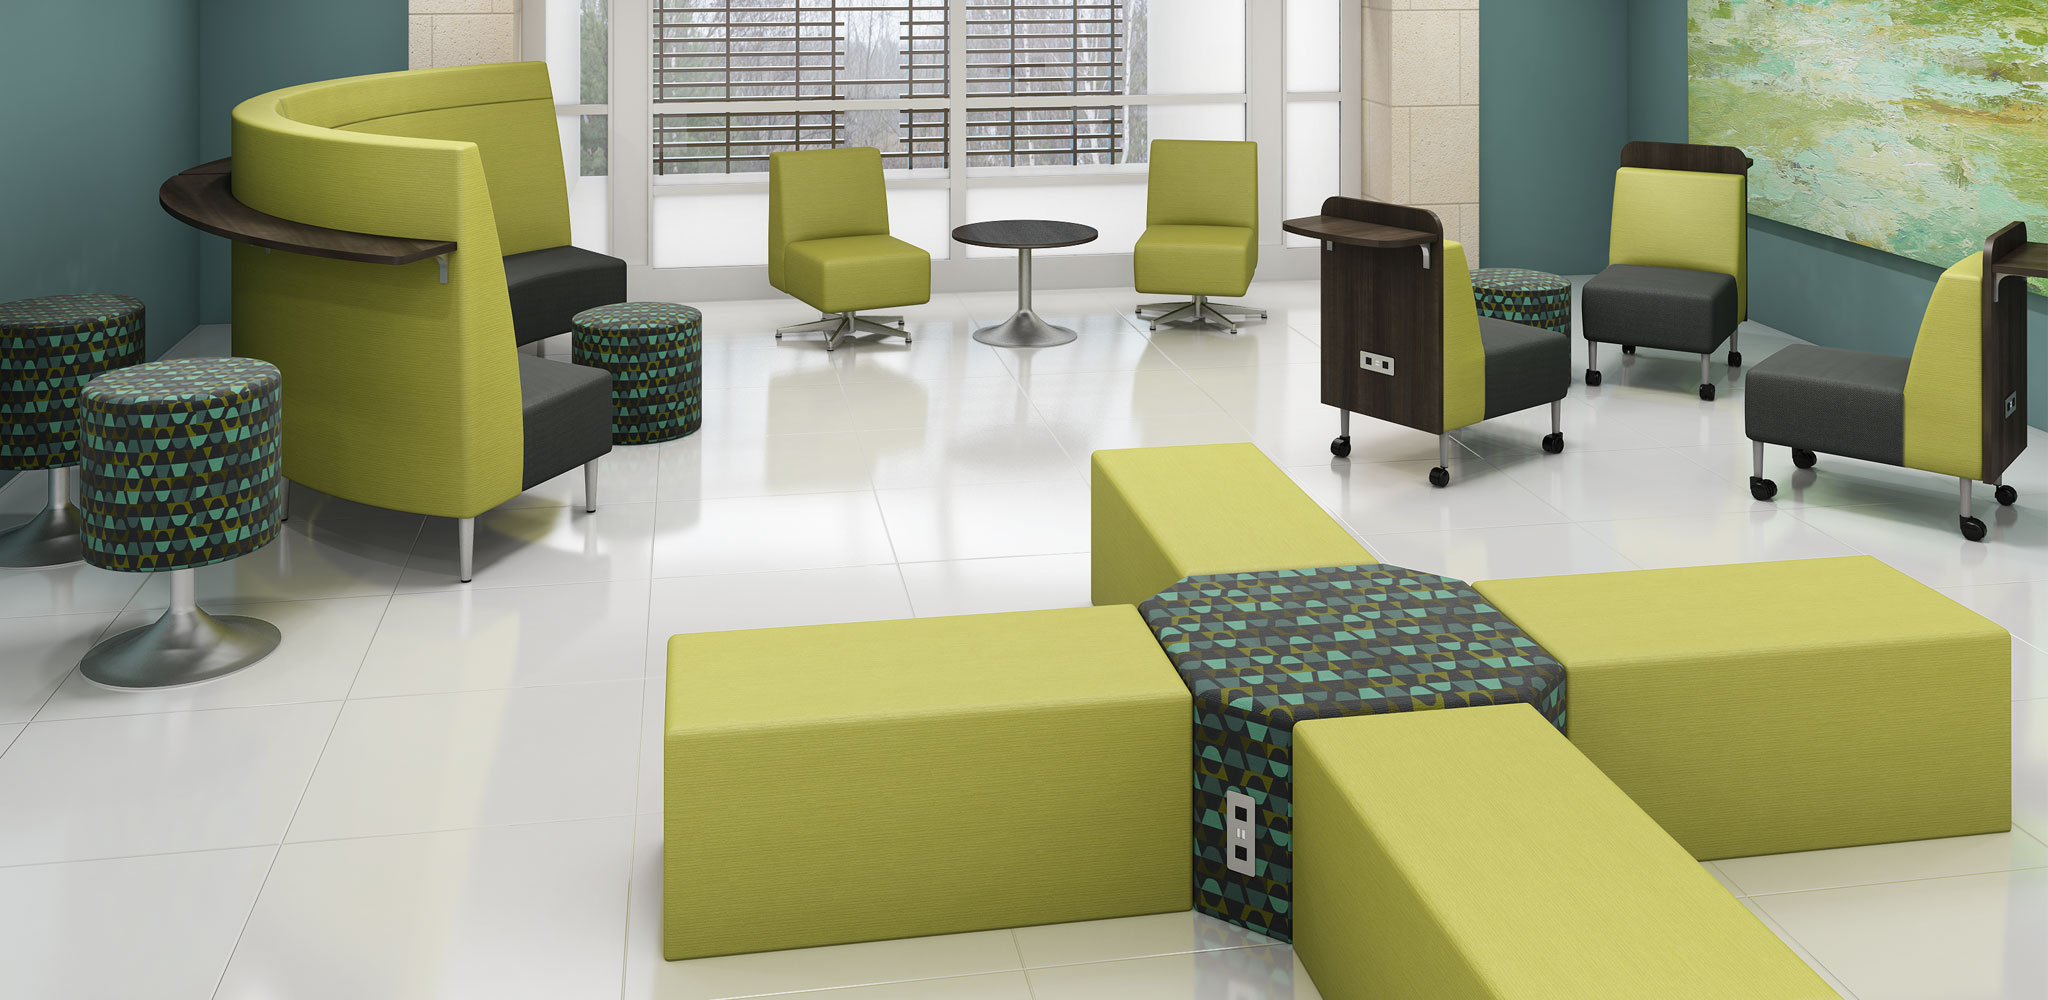 HPFi products for education markets - High Point Furniture Industries